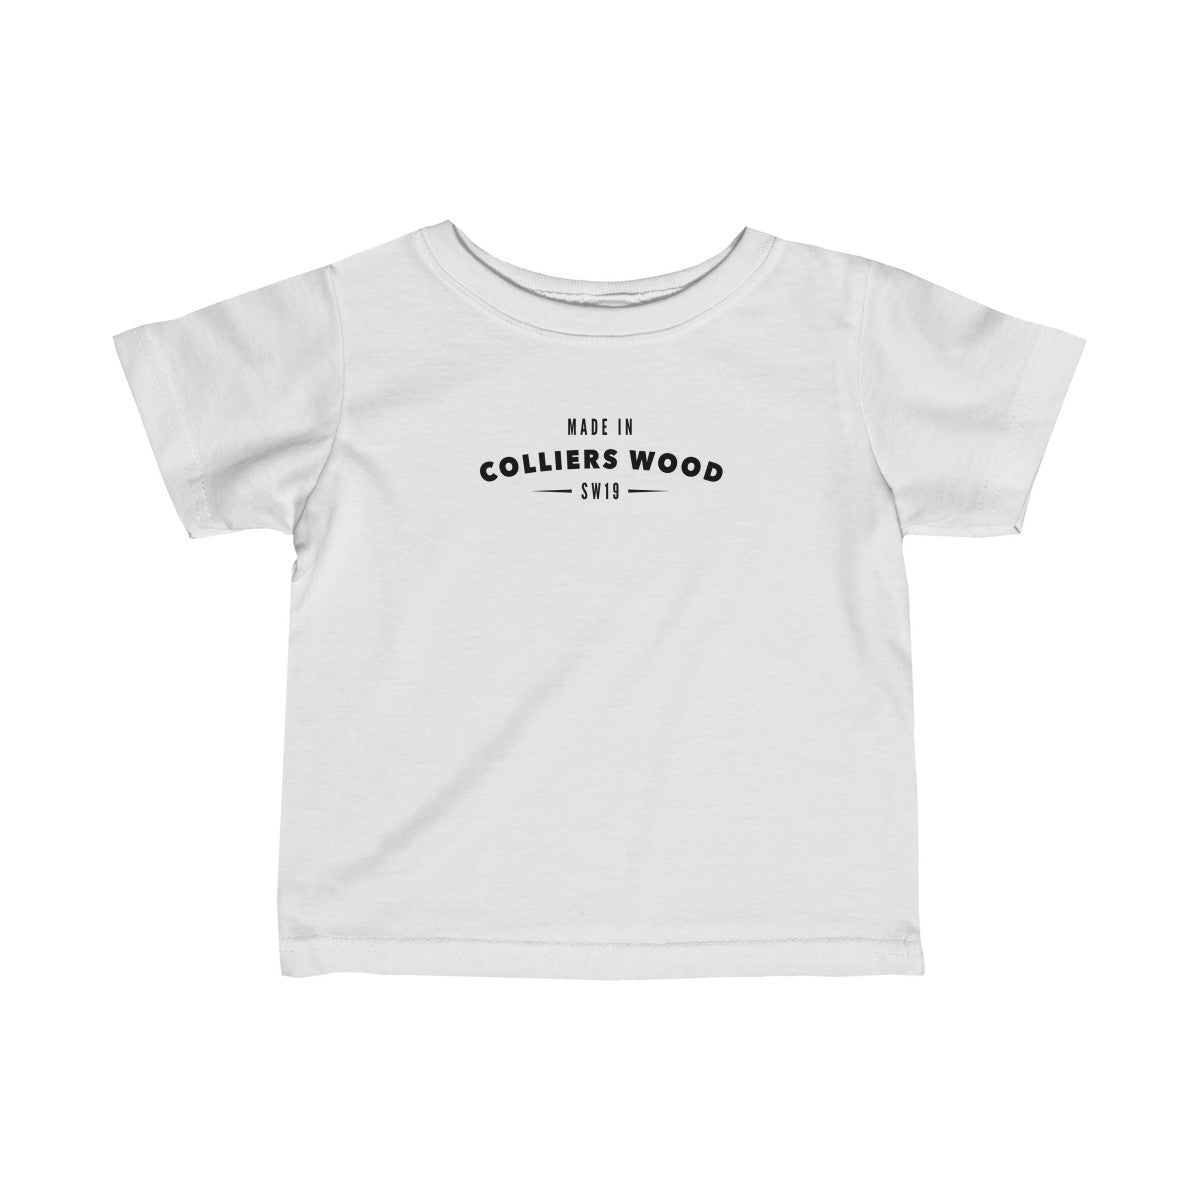 Made In Colliers Wood Infant T-Shirt